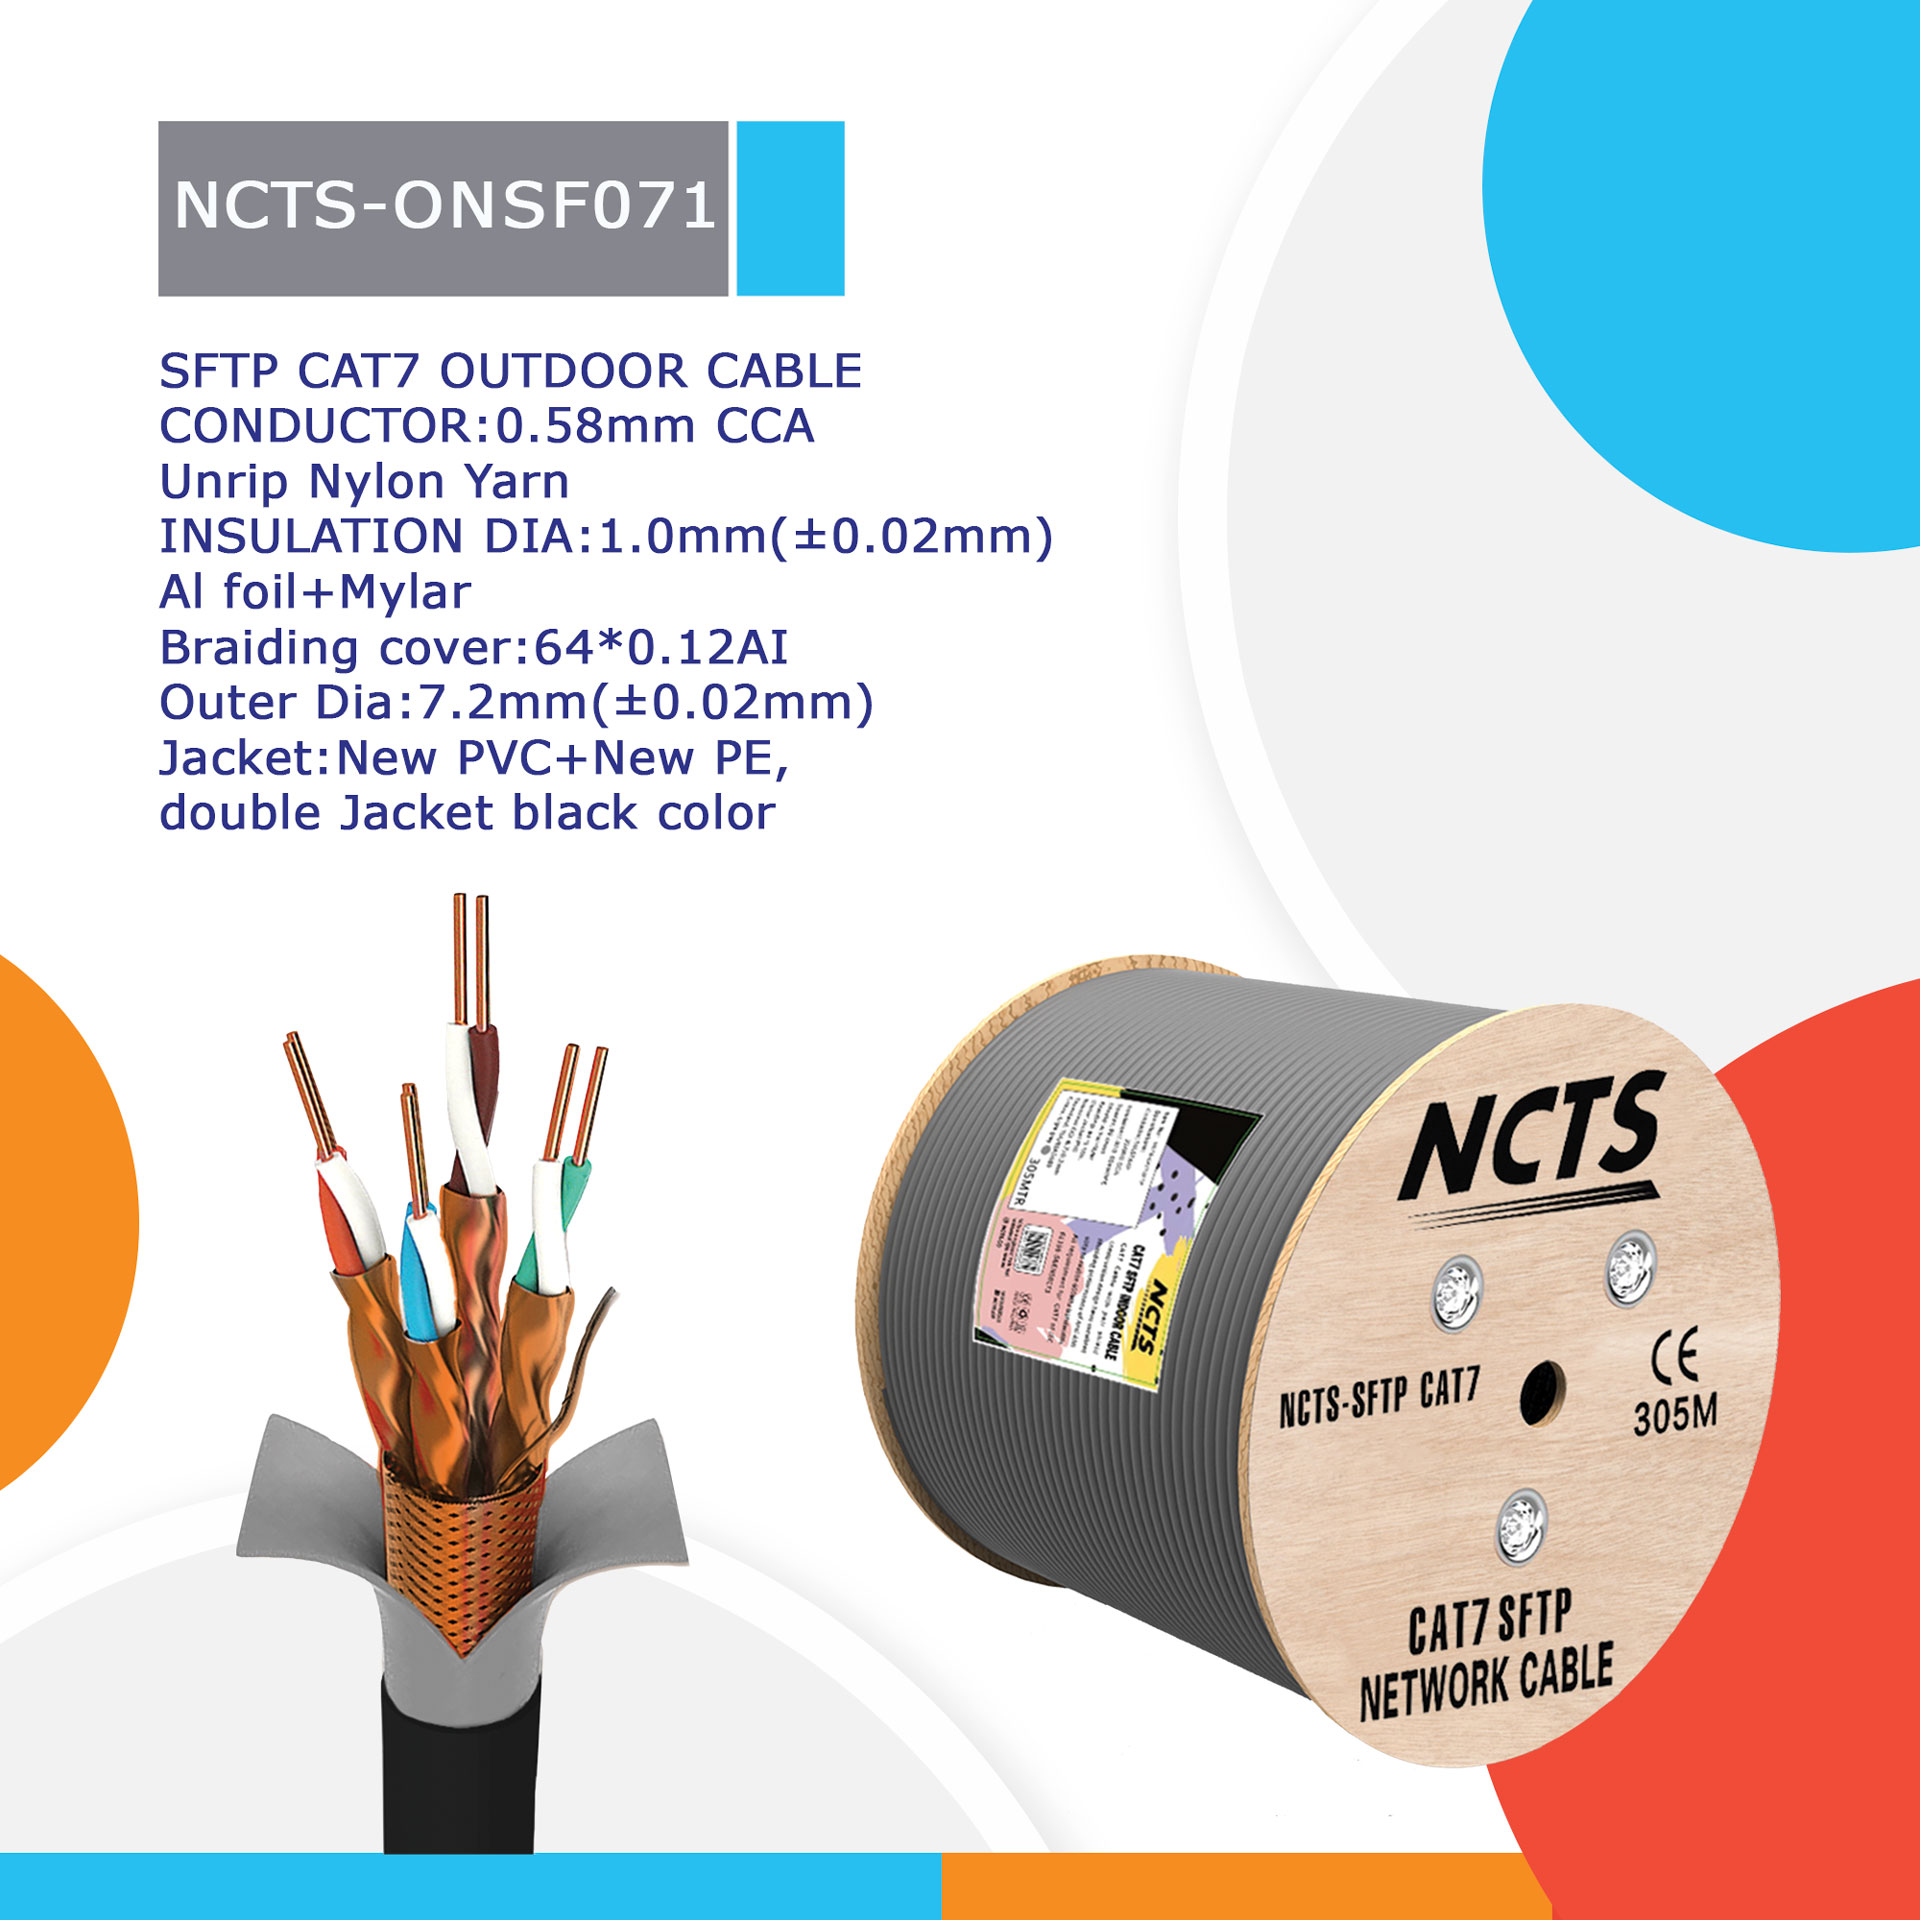 NCTS-ONSF071